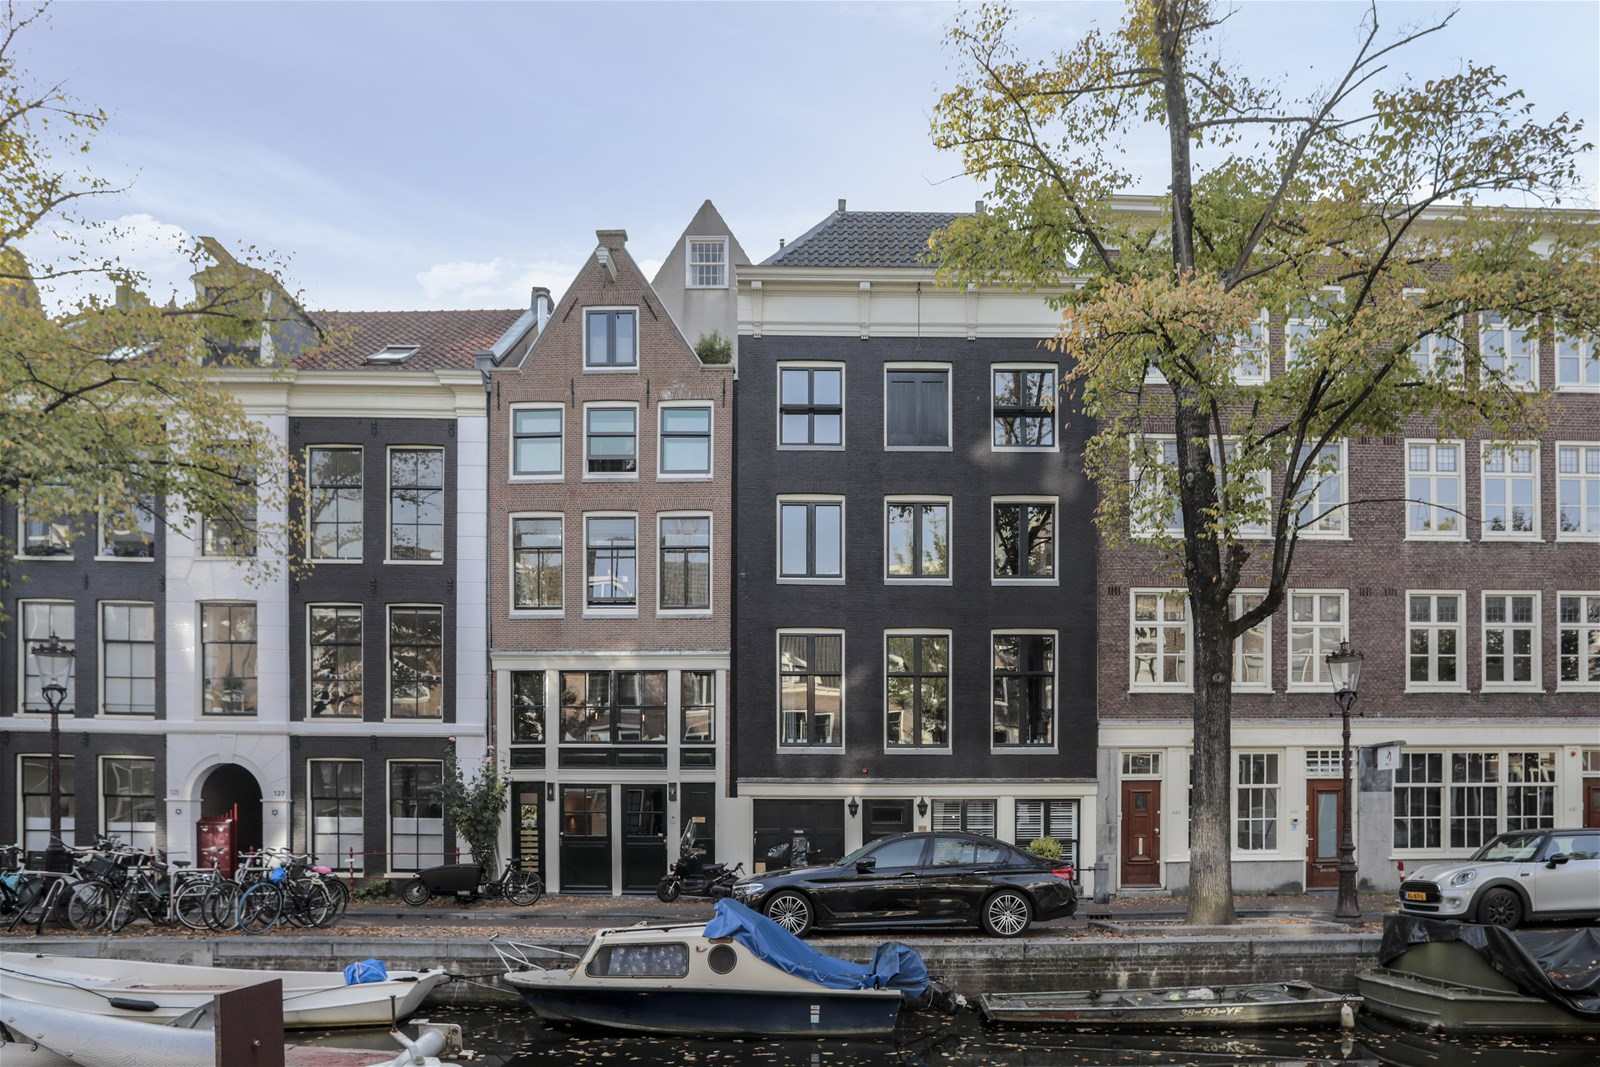 thenordroom-canalhomeamsterdam24.JPG